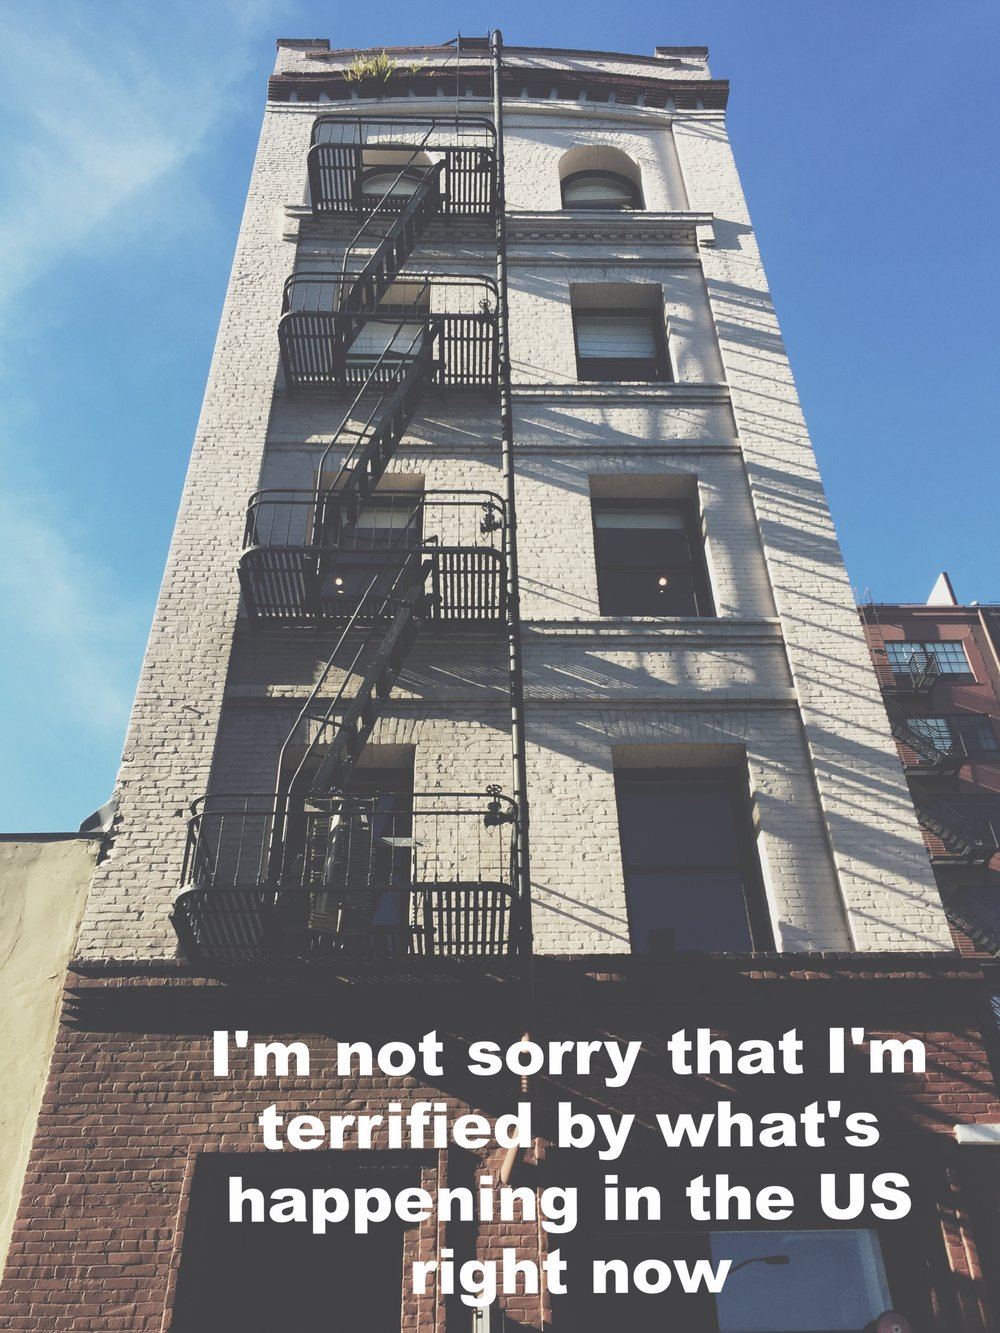 "Sarah (sasemon) January 31 2017 Image of a tall white brick building with wrought-iron fire escapes on one side, shot from below against a bright blue sky. ""I'm not sorry that I'm terrified by what's happening in the US right now"" is overlaid."